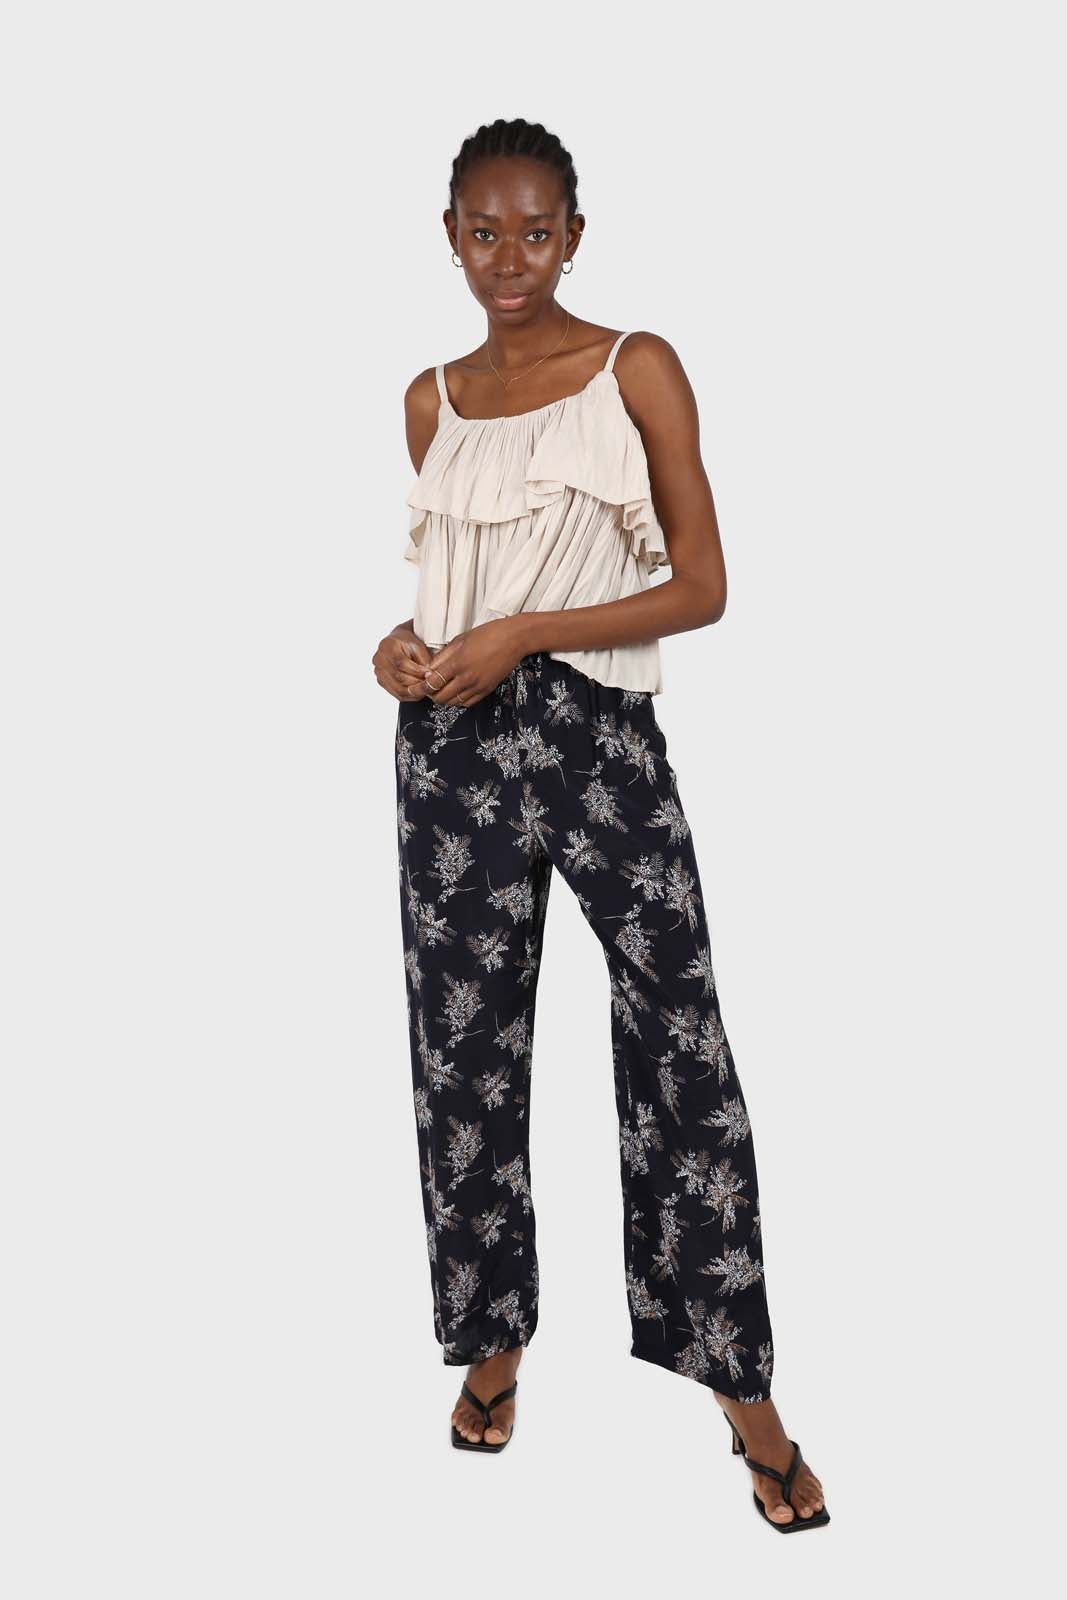 Navy and white floral wide leg trousers1sx